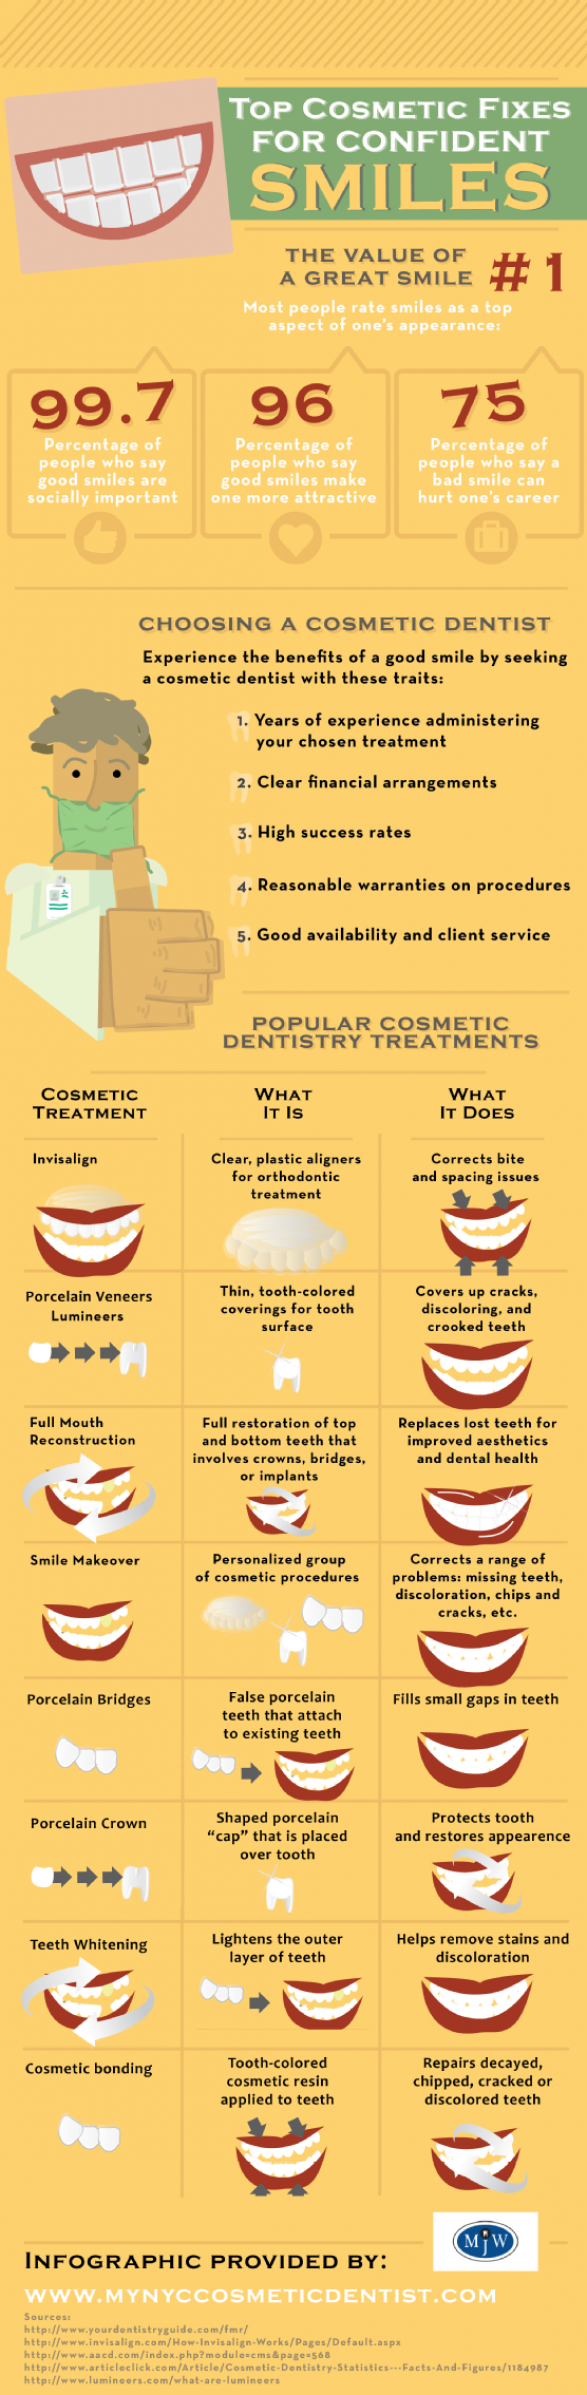 Top Cosmetic Fixes for Confindent Smiles